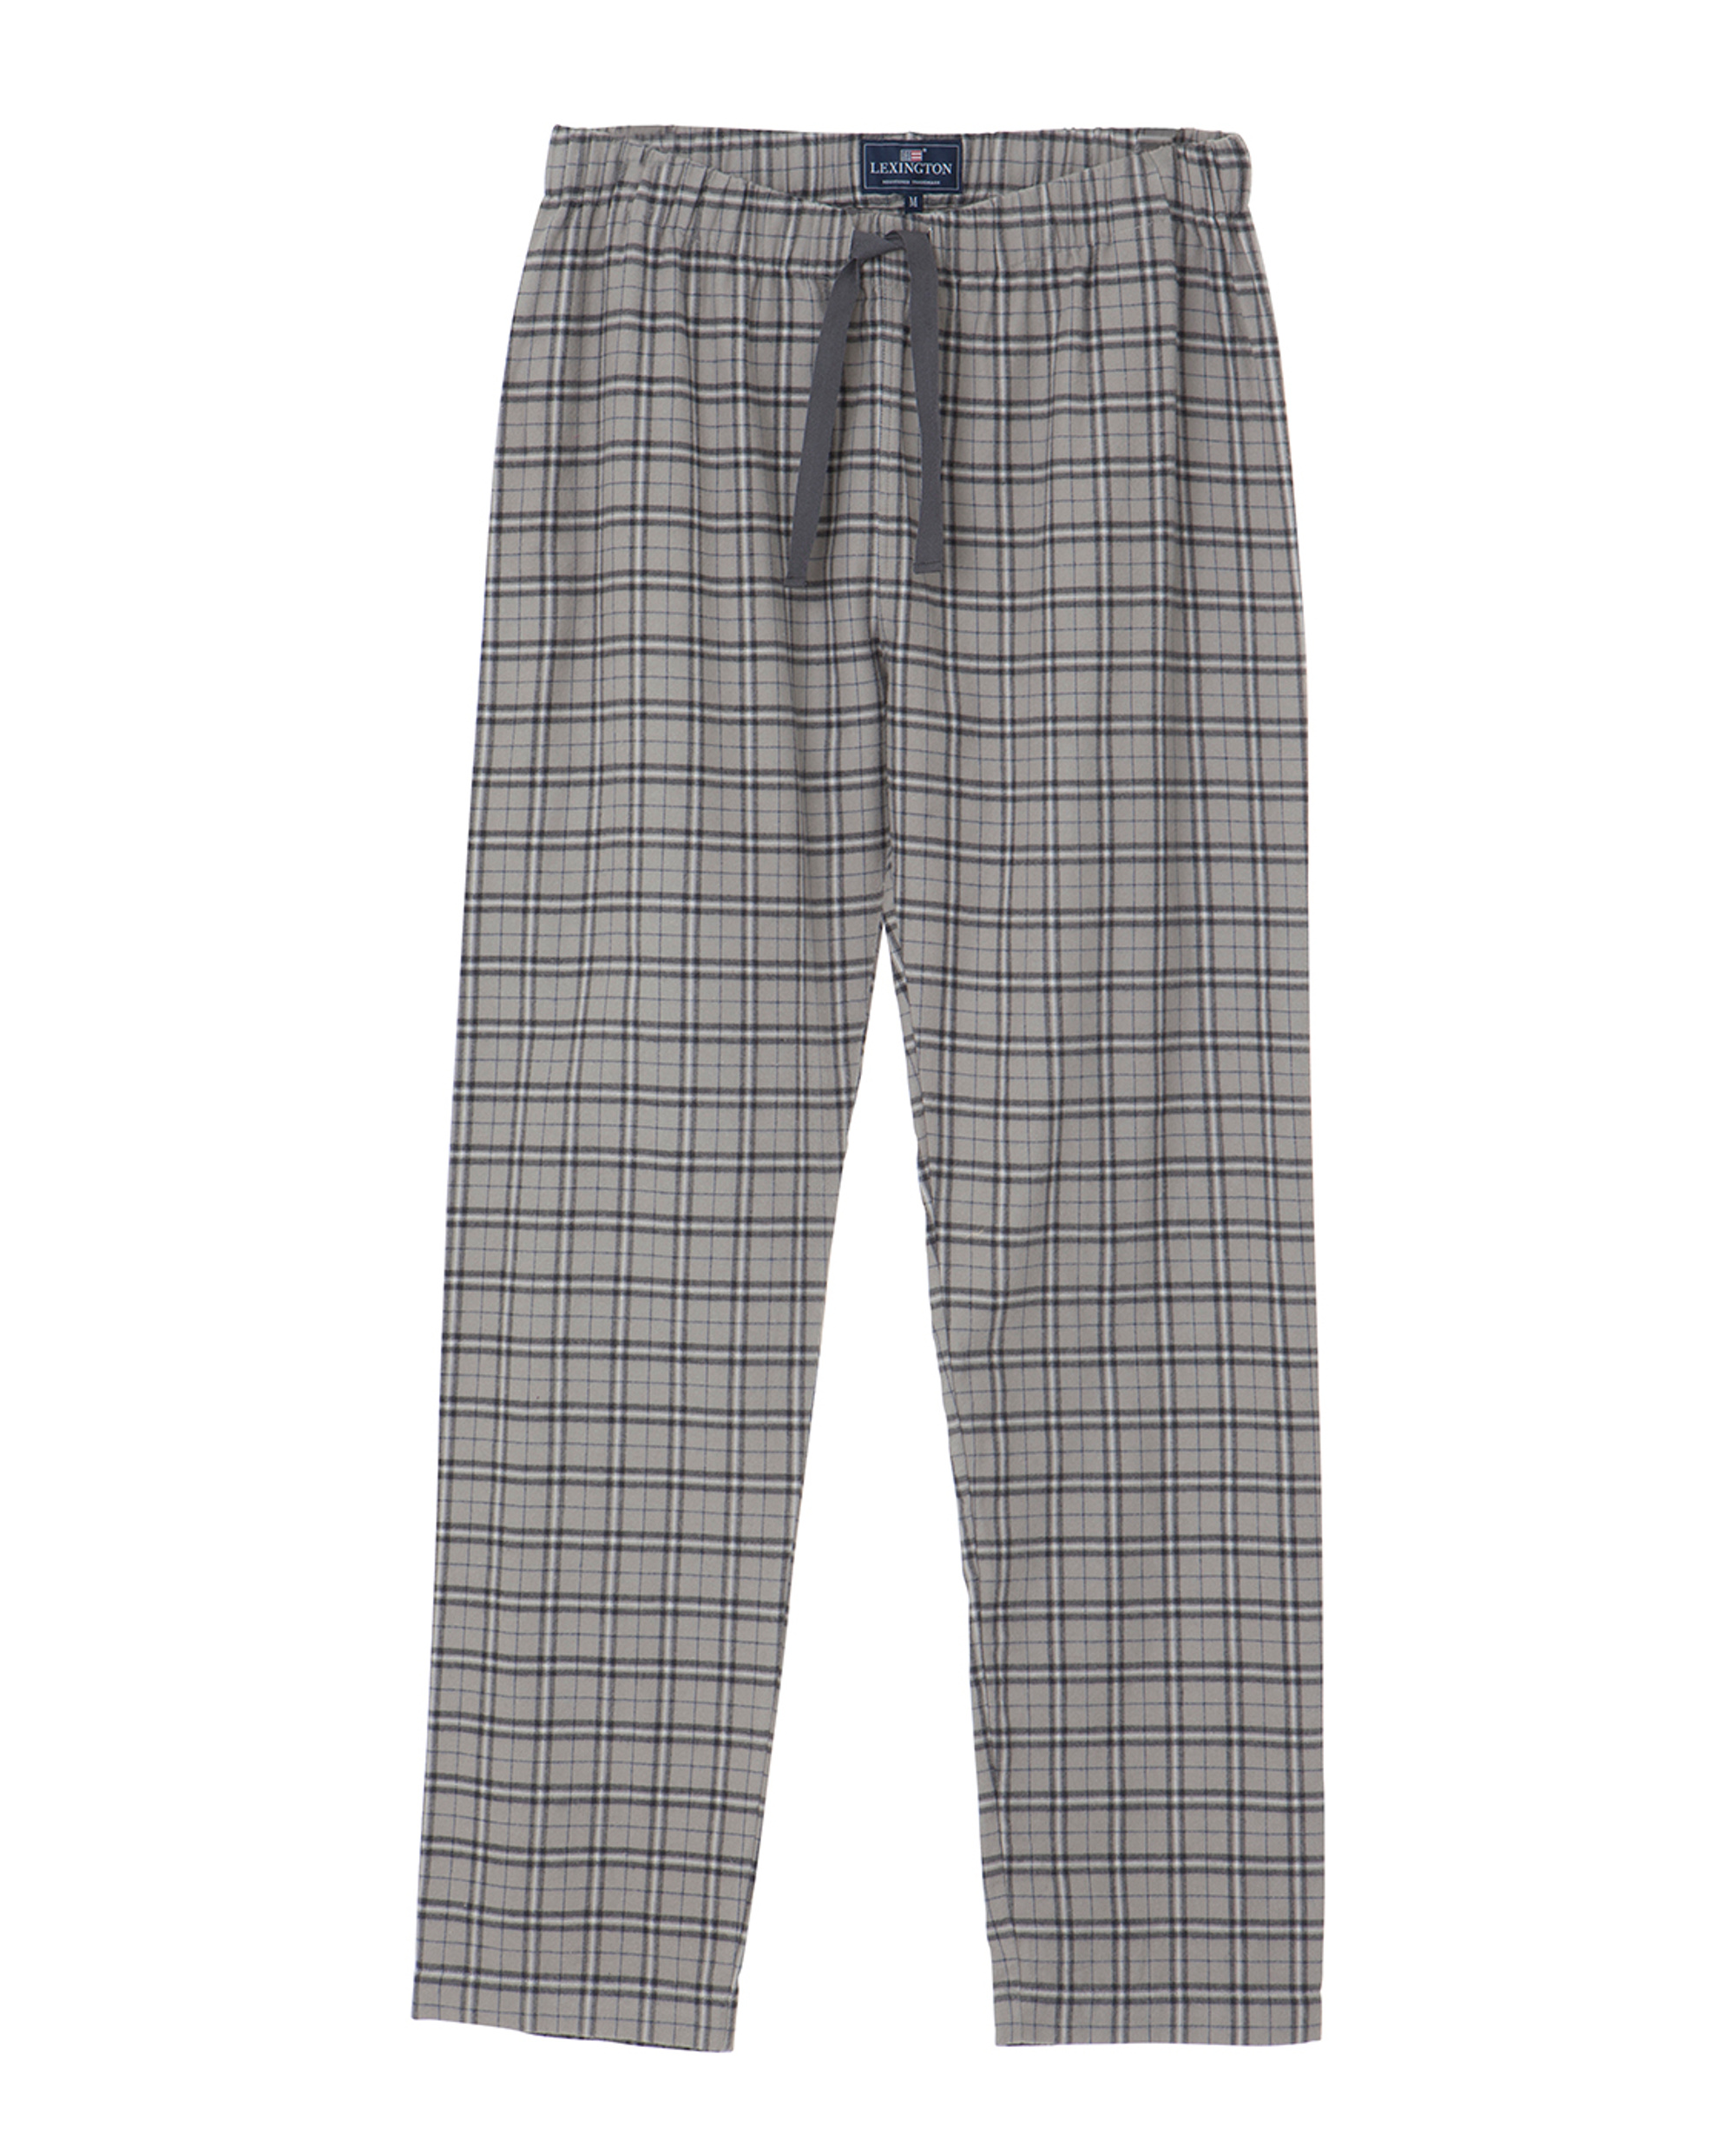 Vince Pajama, Gray/Blue